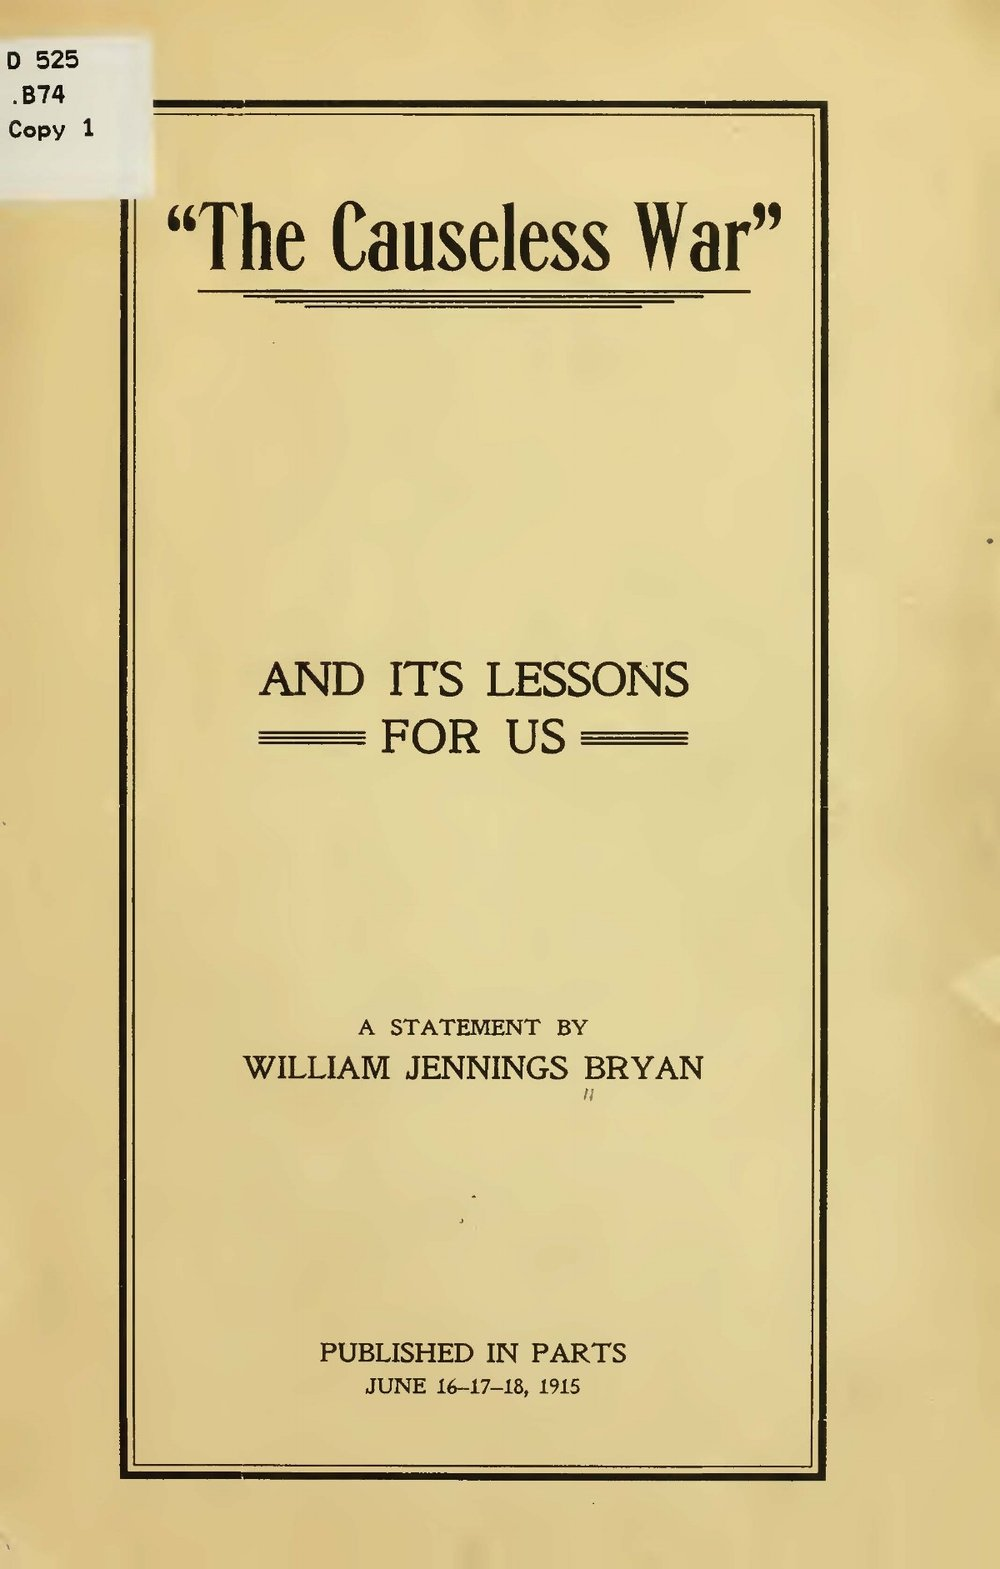 Bryan, Sr., William Jennings, The Causeless War Title Page.jpg